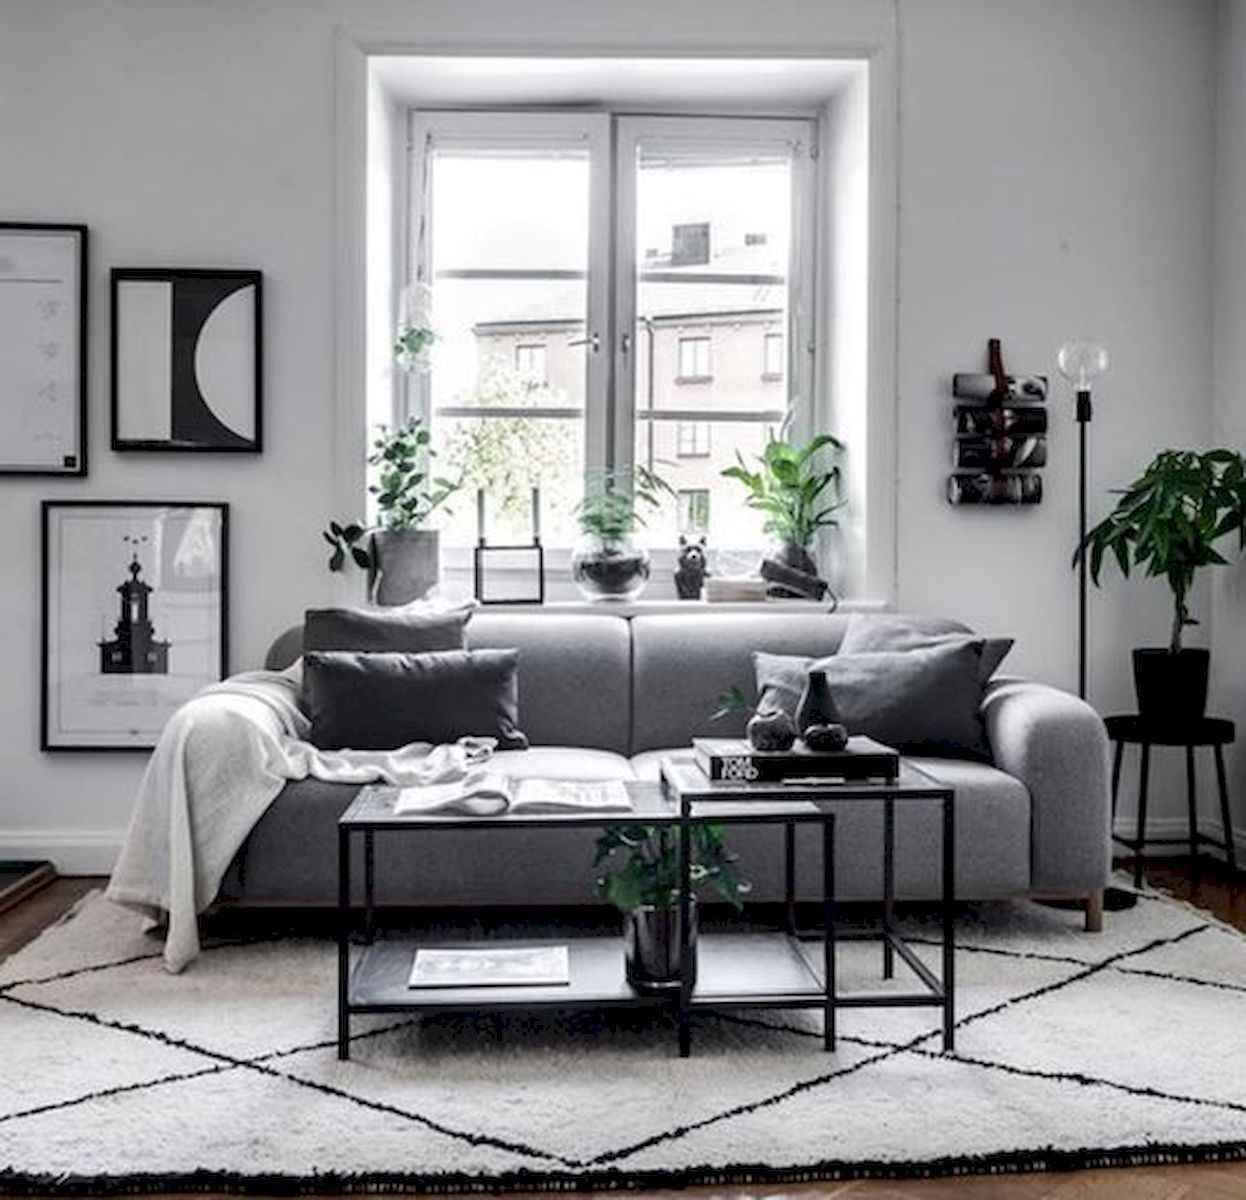 Decorating your living room properly will. 70 Stunning Grey White Black Living Room Decor Ideas And ...